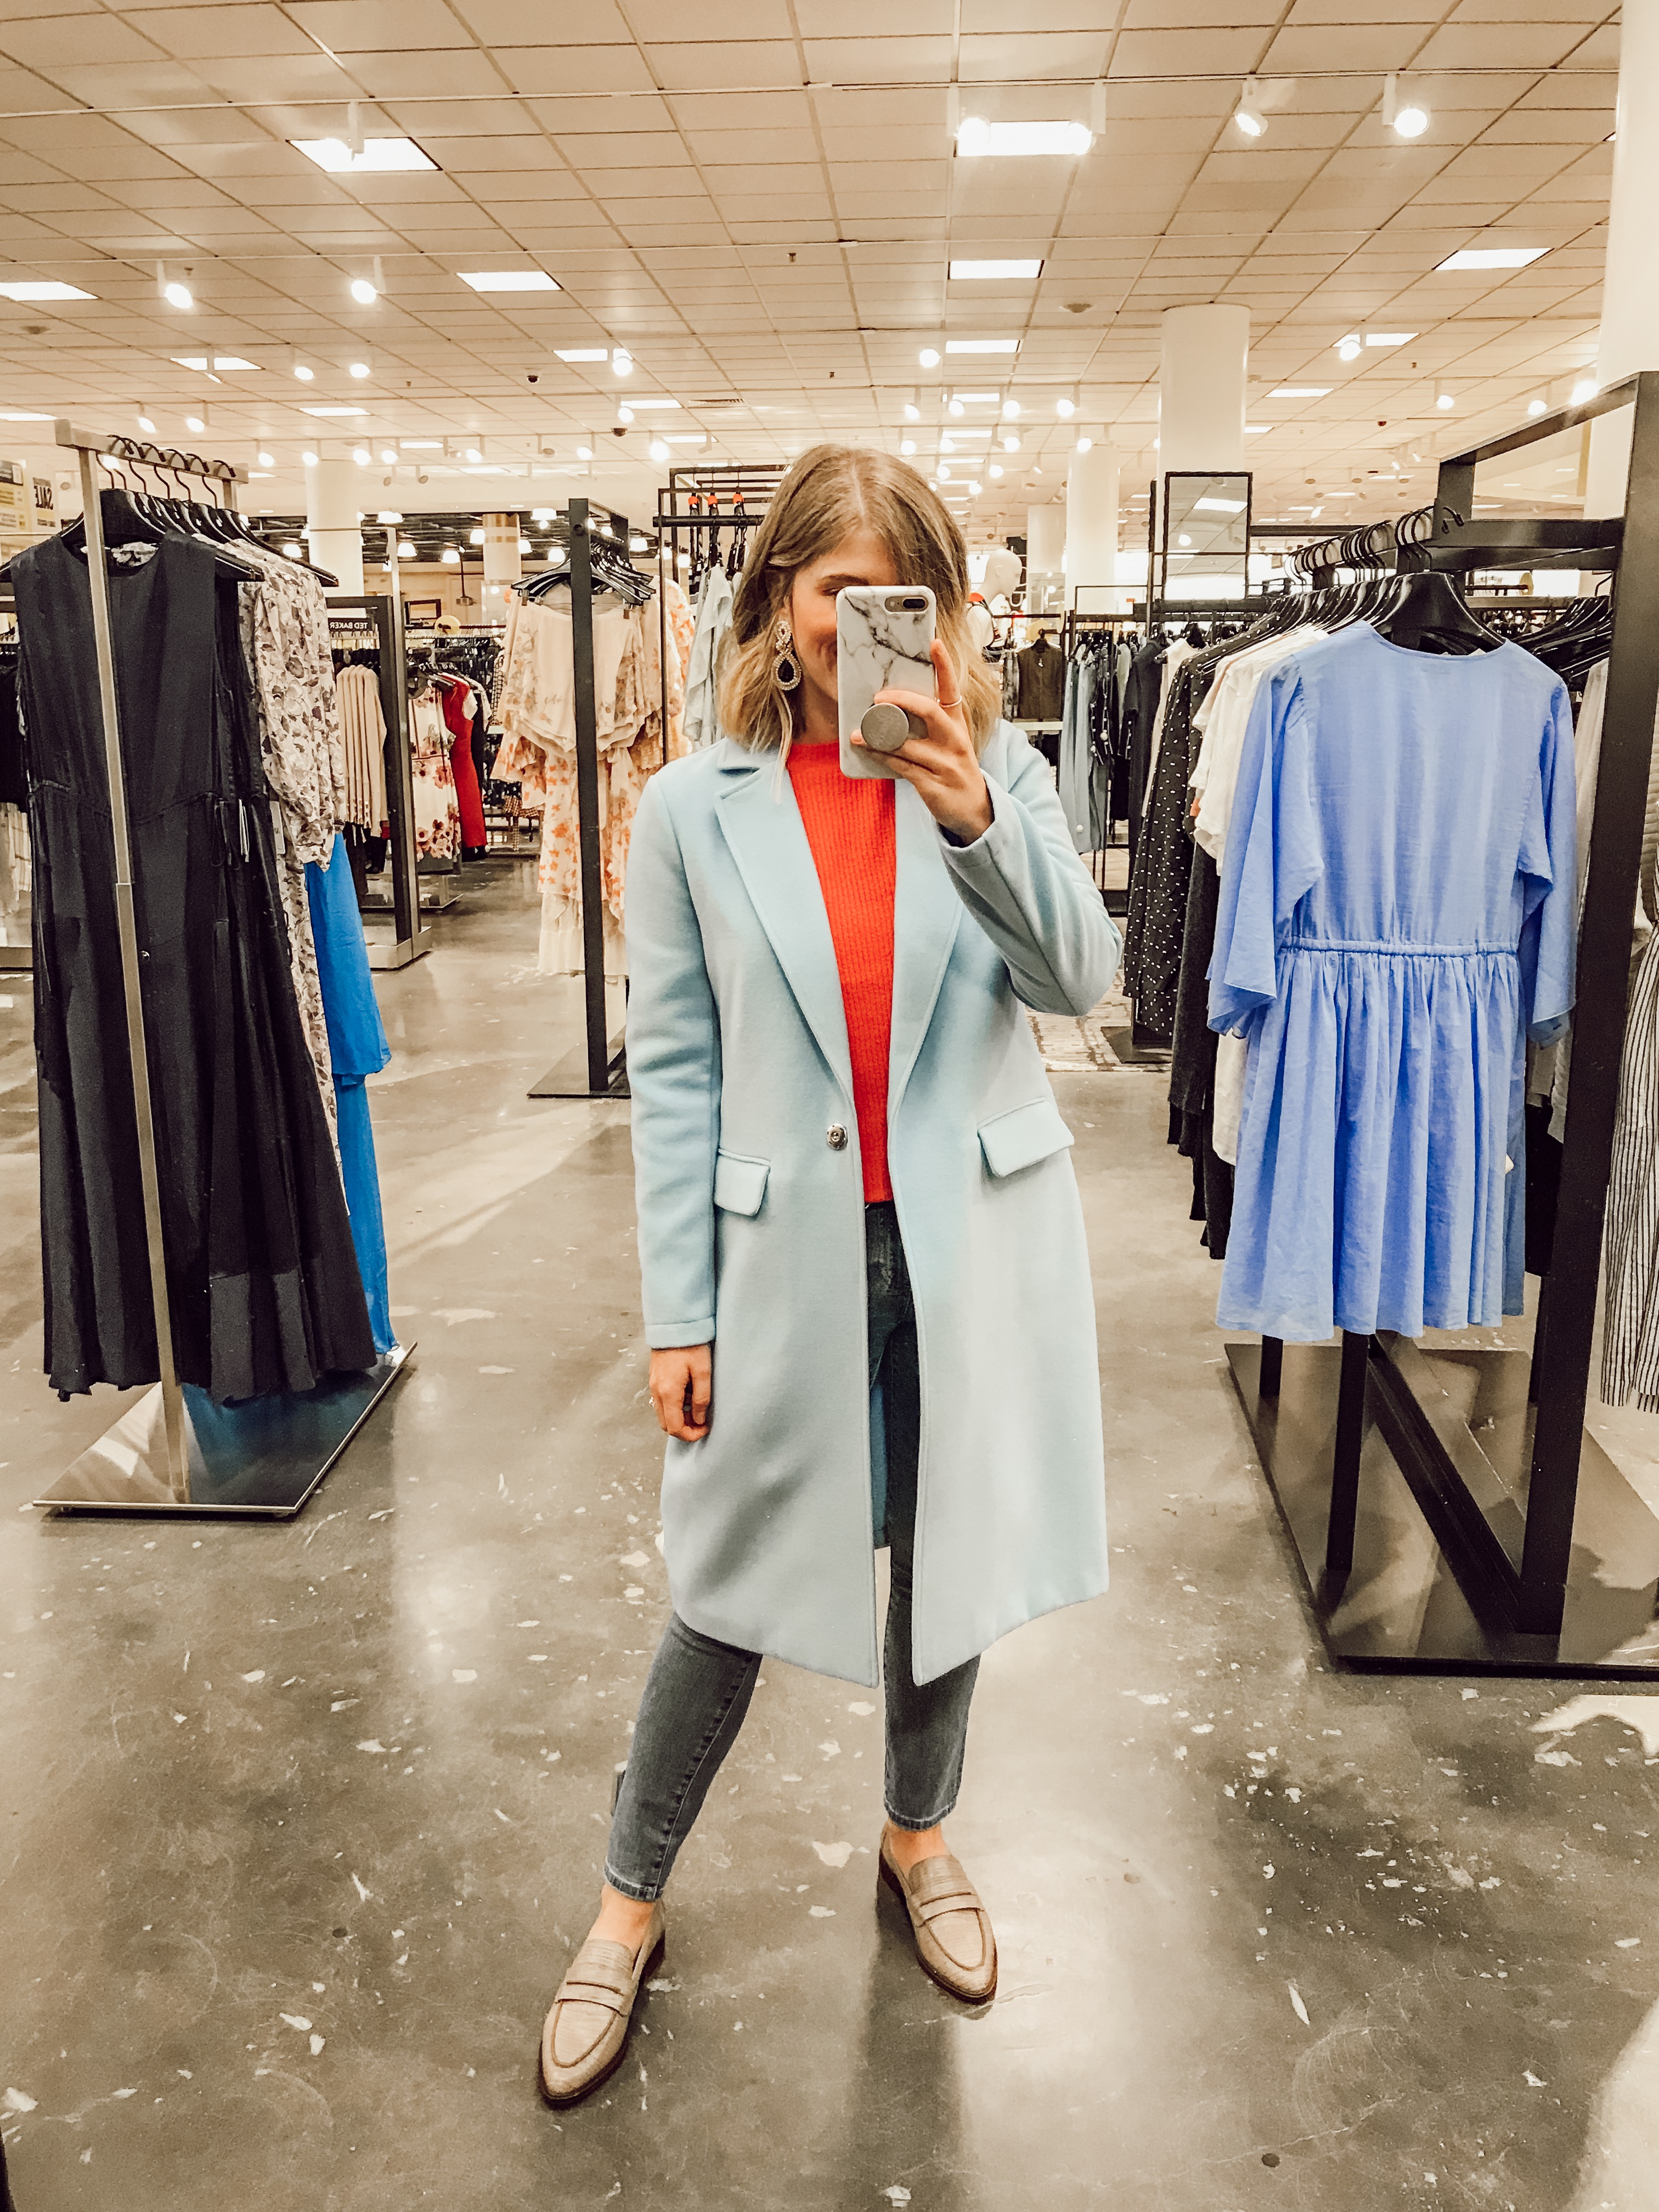 Vince Camuto Lightweight Long Coat | 2019 Nordstrom Anniversary Fitting Room Session featured on Louella Reese Life & Style Blog